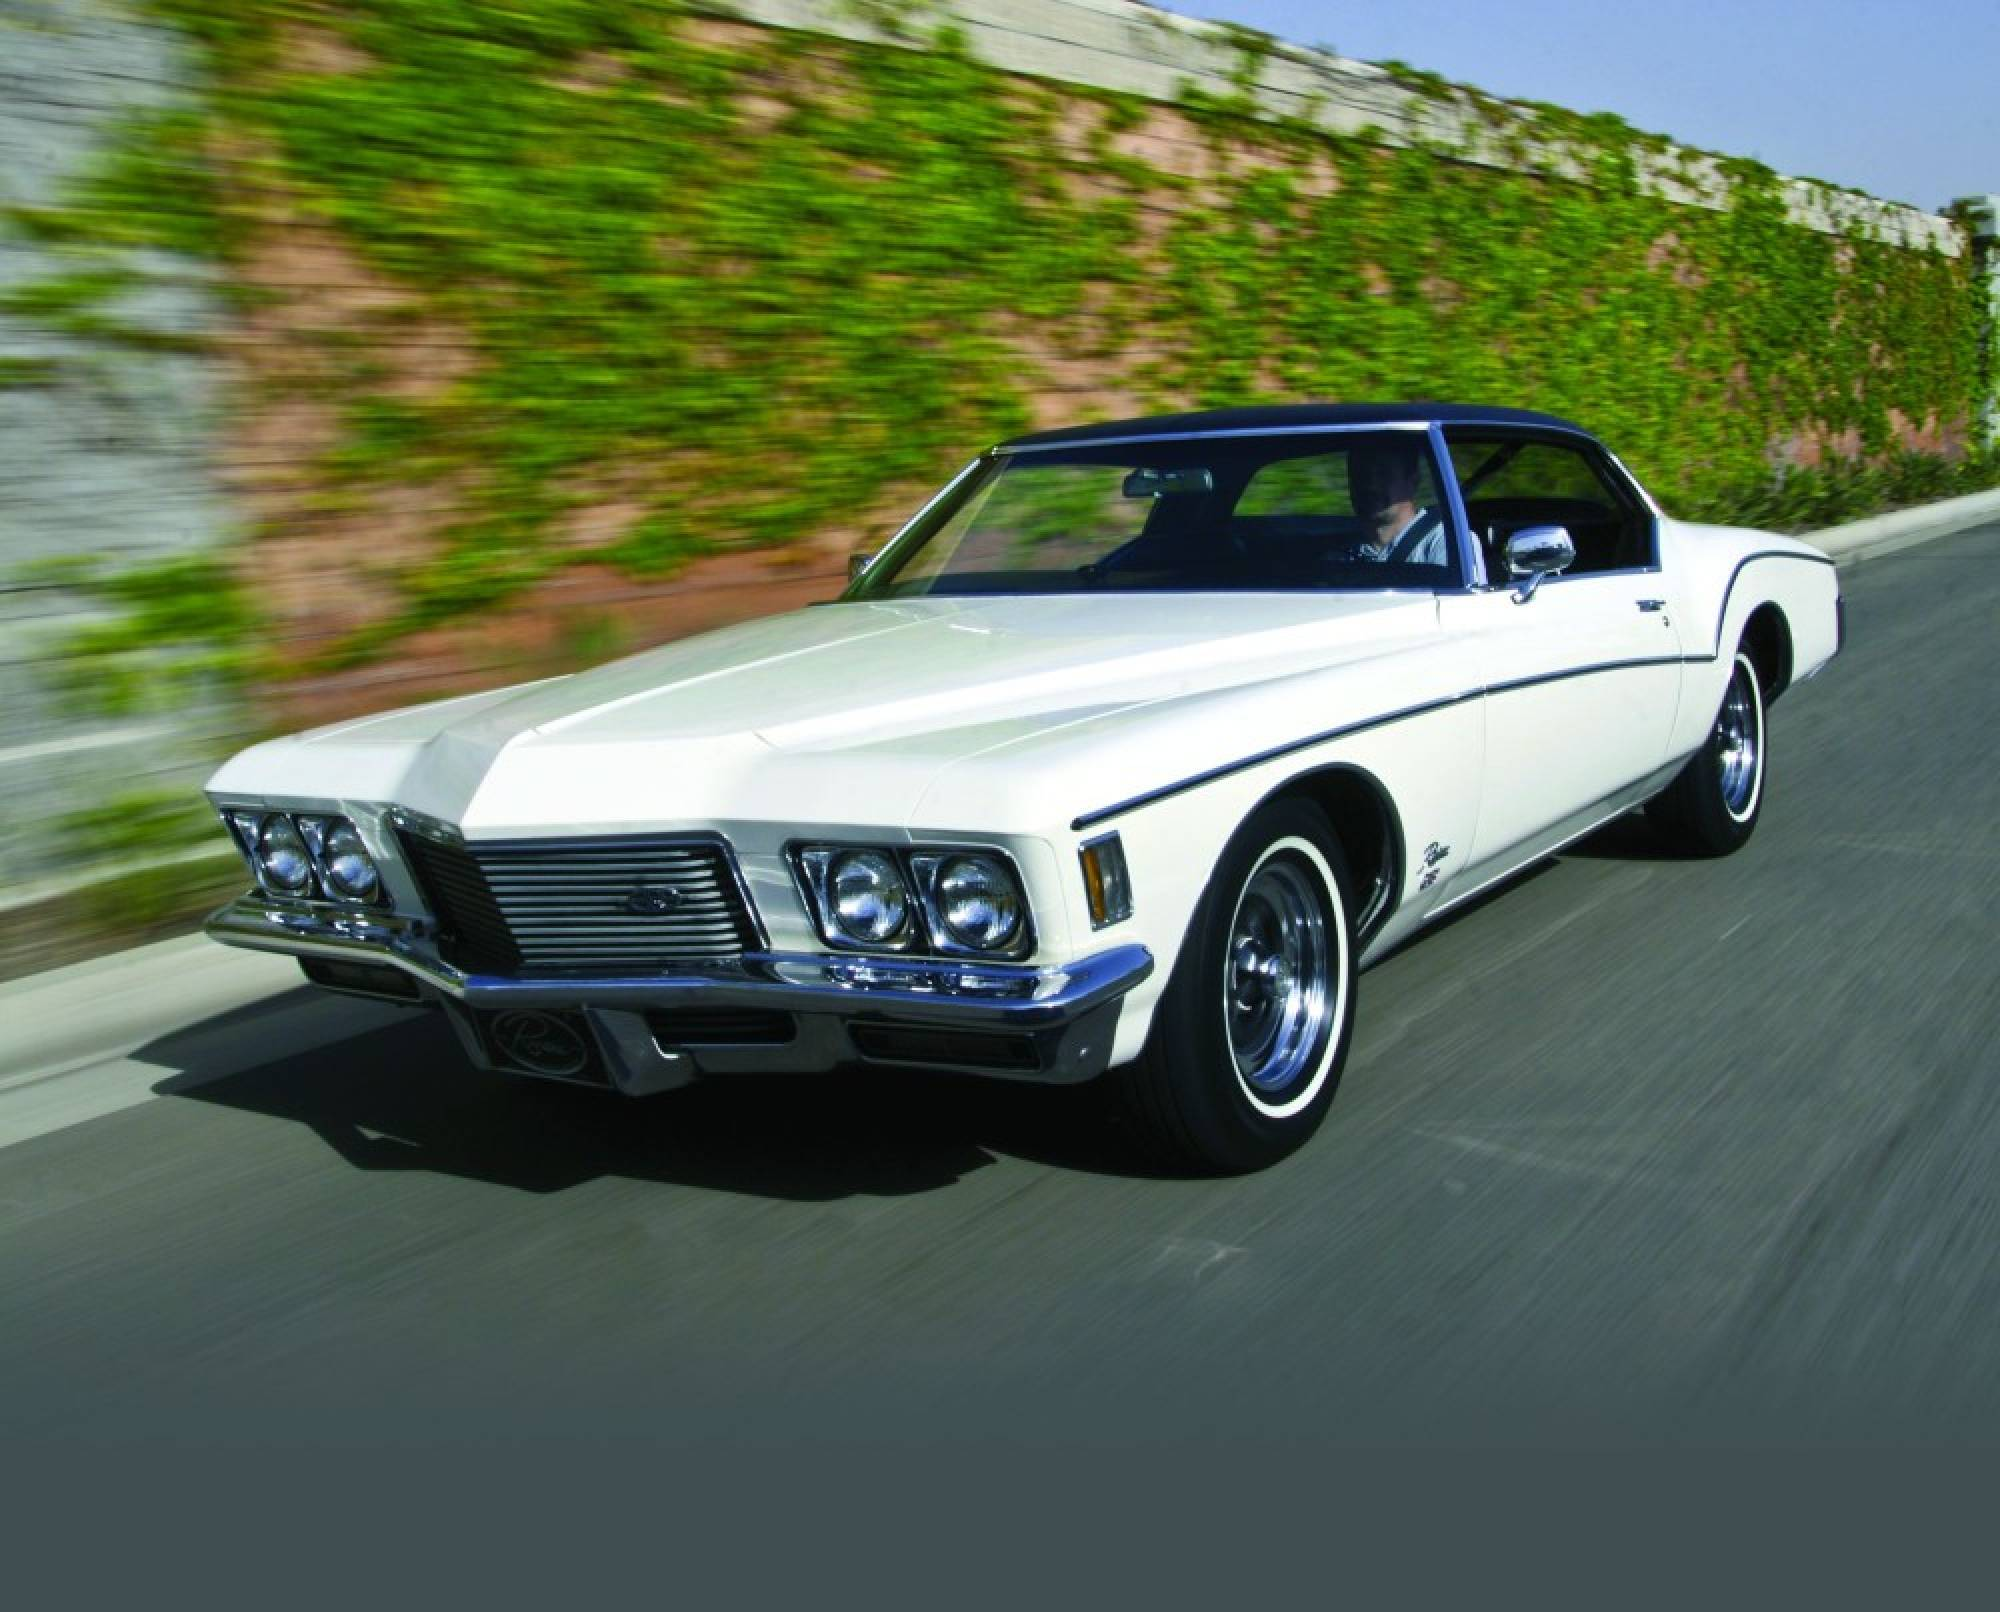 Buick Riviera III 1971 - 1973 Coupe :: OUTSTANDING CARS